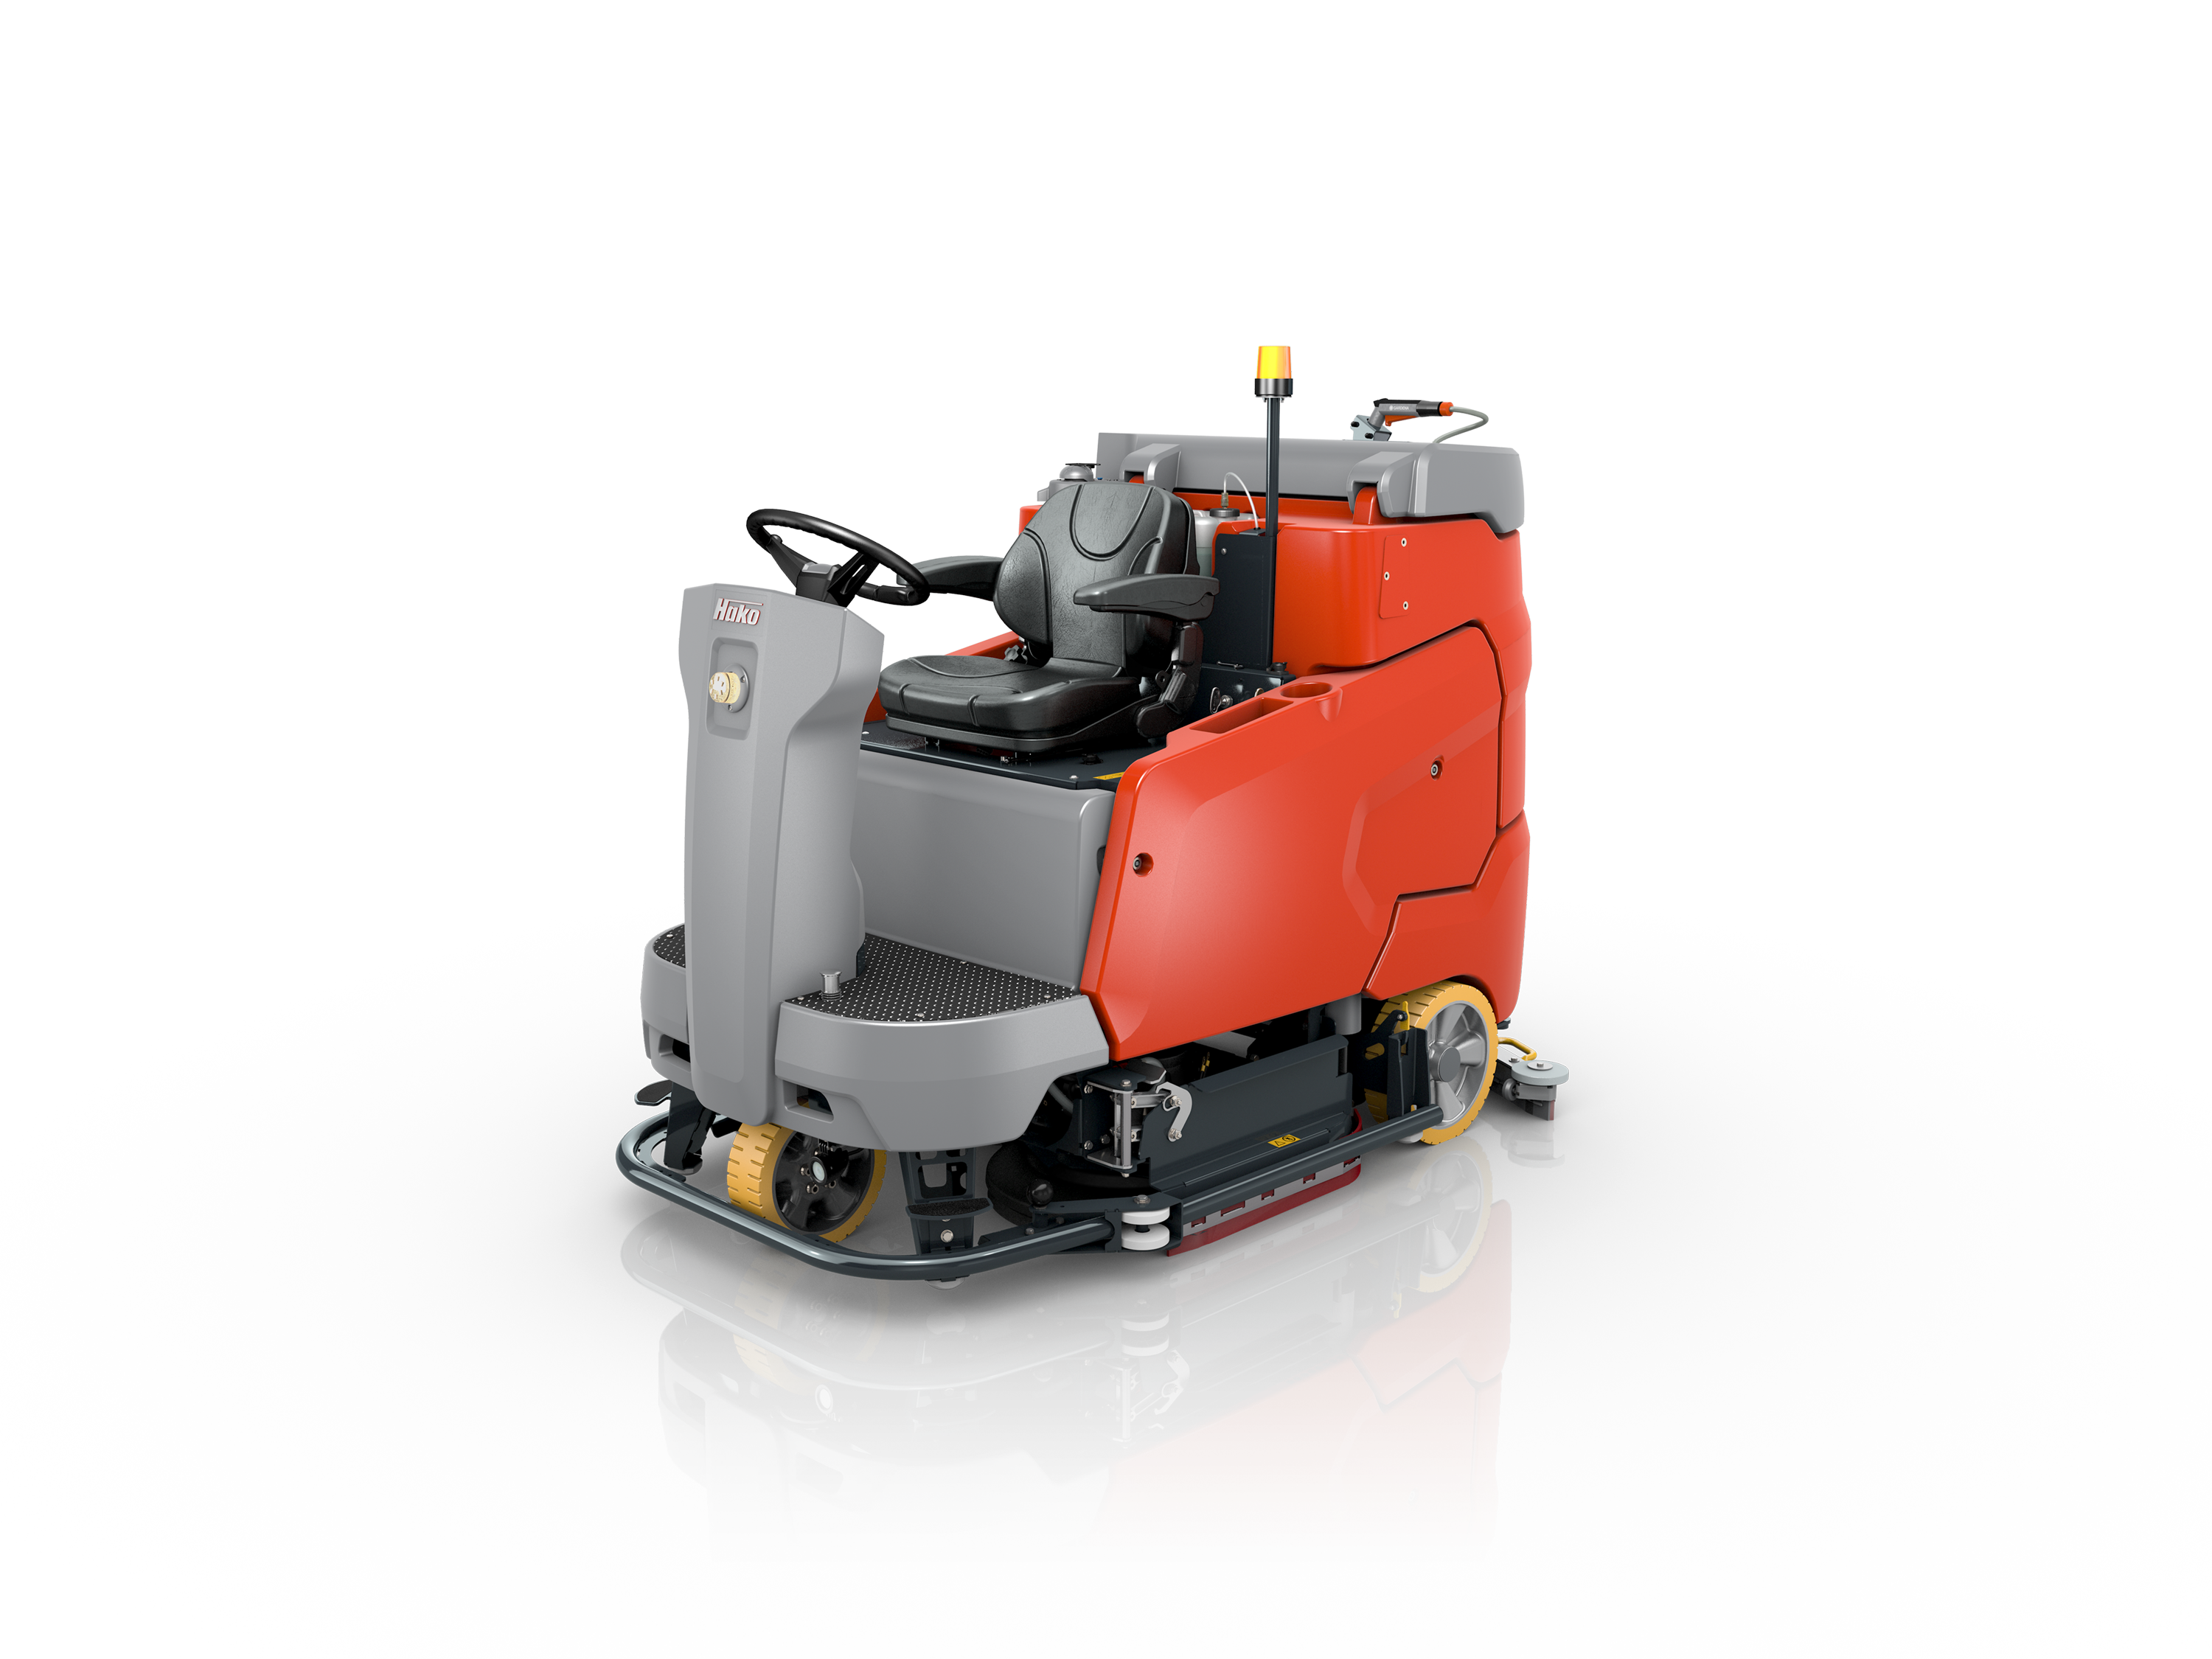 Scrubmaster B260 R Industrial Battery Electric Ride-on Floor Scrubber